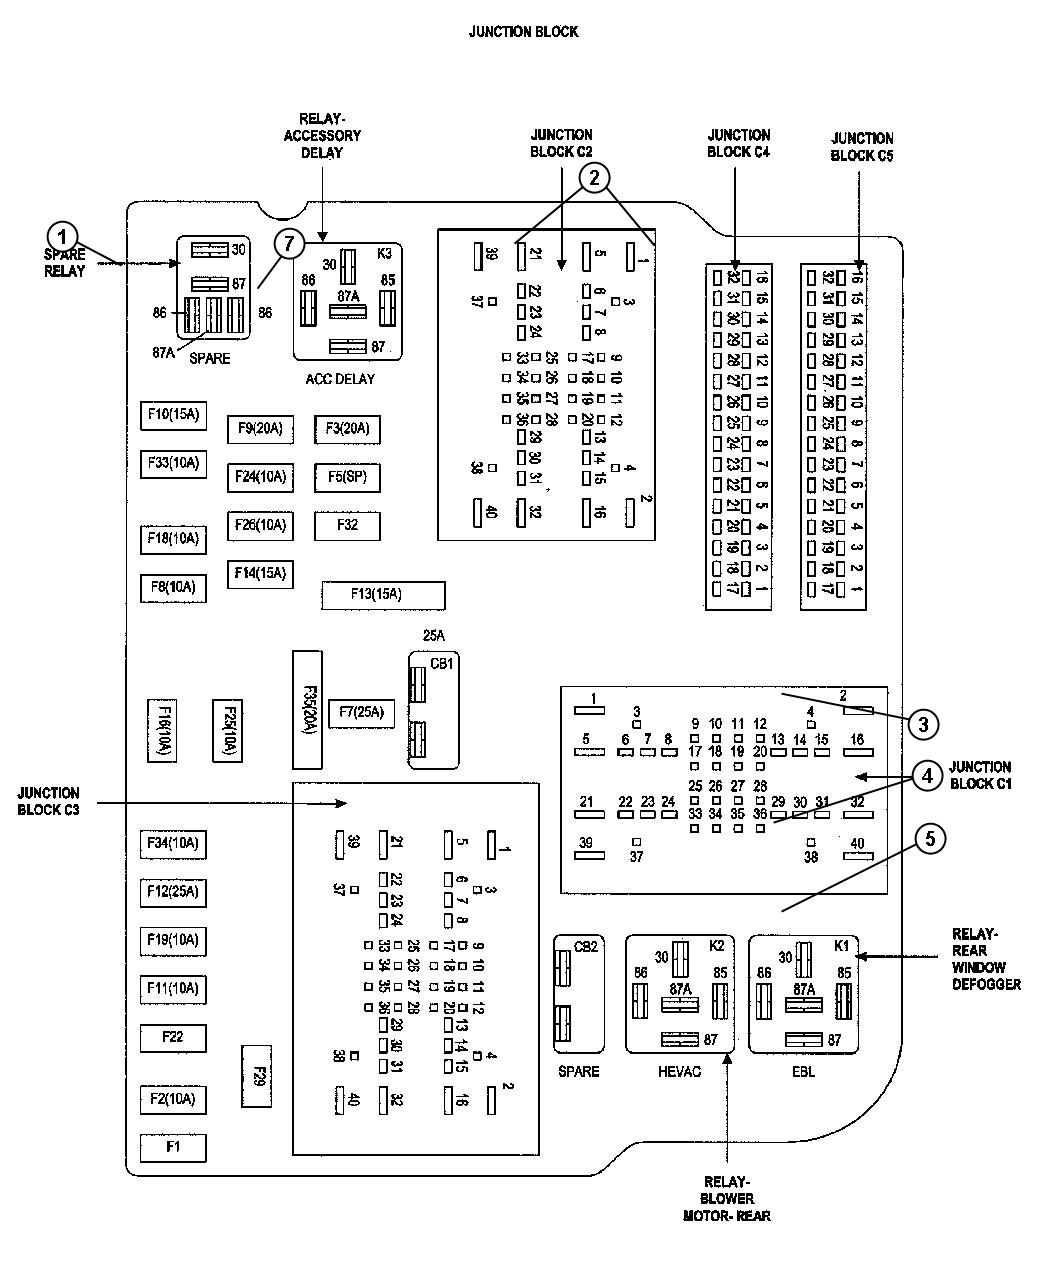 Dodge 904 Transmission Diagram furthermore Land Rover Series 2 Engine additionally Kia Spectra5 Fuse Box Diagram besides International Scout 800b in addition Firing Order Chevy 350 Firing Order Chevy 350 Firing Order Diagram. on 1964 chrysler 300 wiring diagram